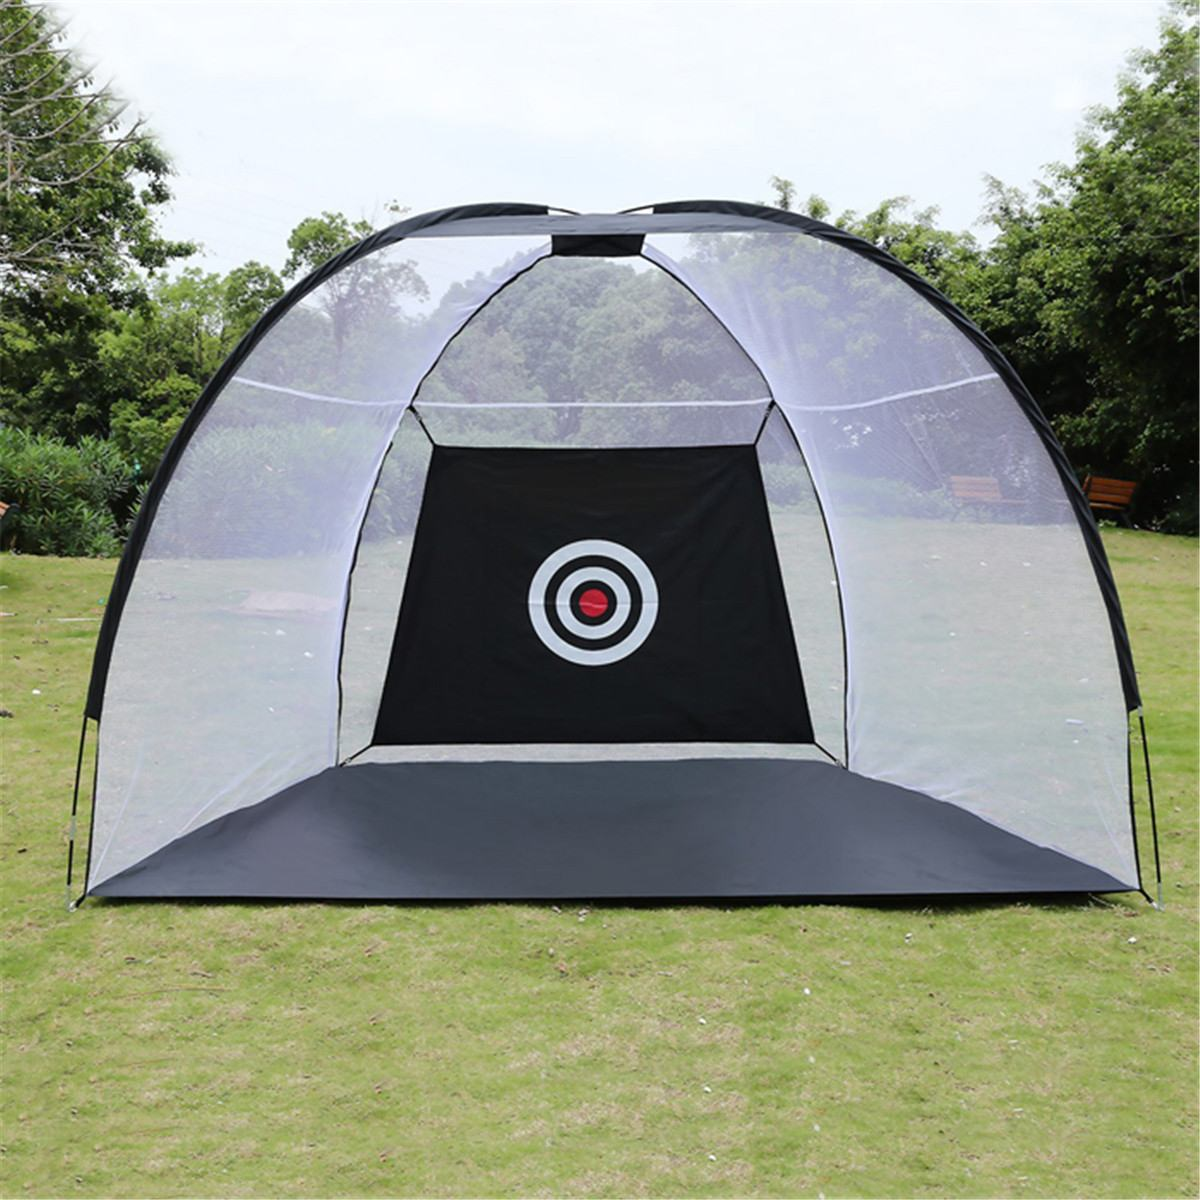 Black Golf Training Adis Foldable Golf Hitting Cage Garden Grassland Golf Training Practice Net Sport Golf Exercise Equipment